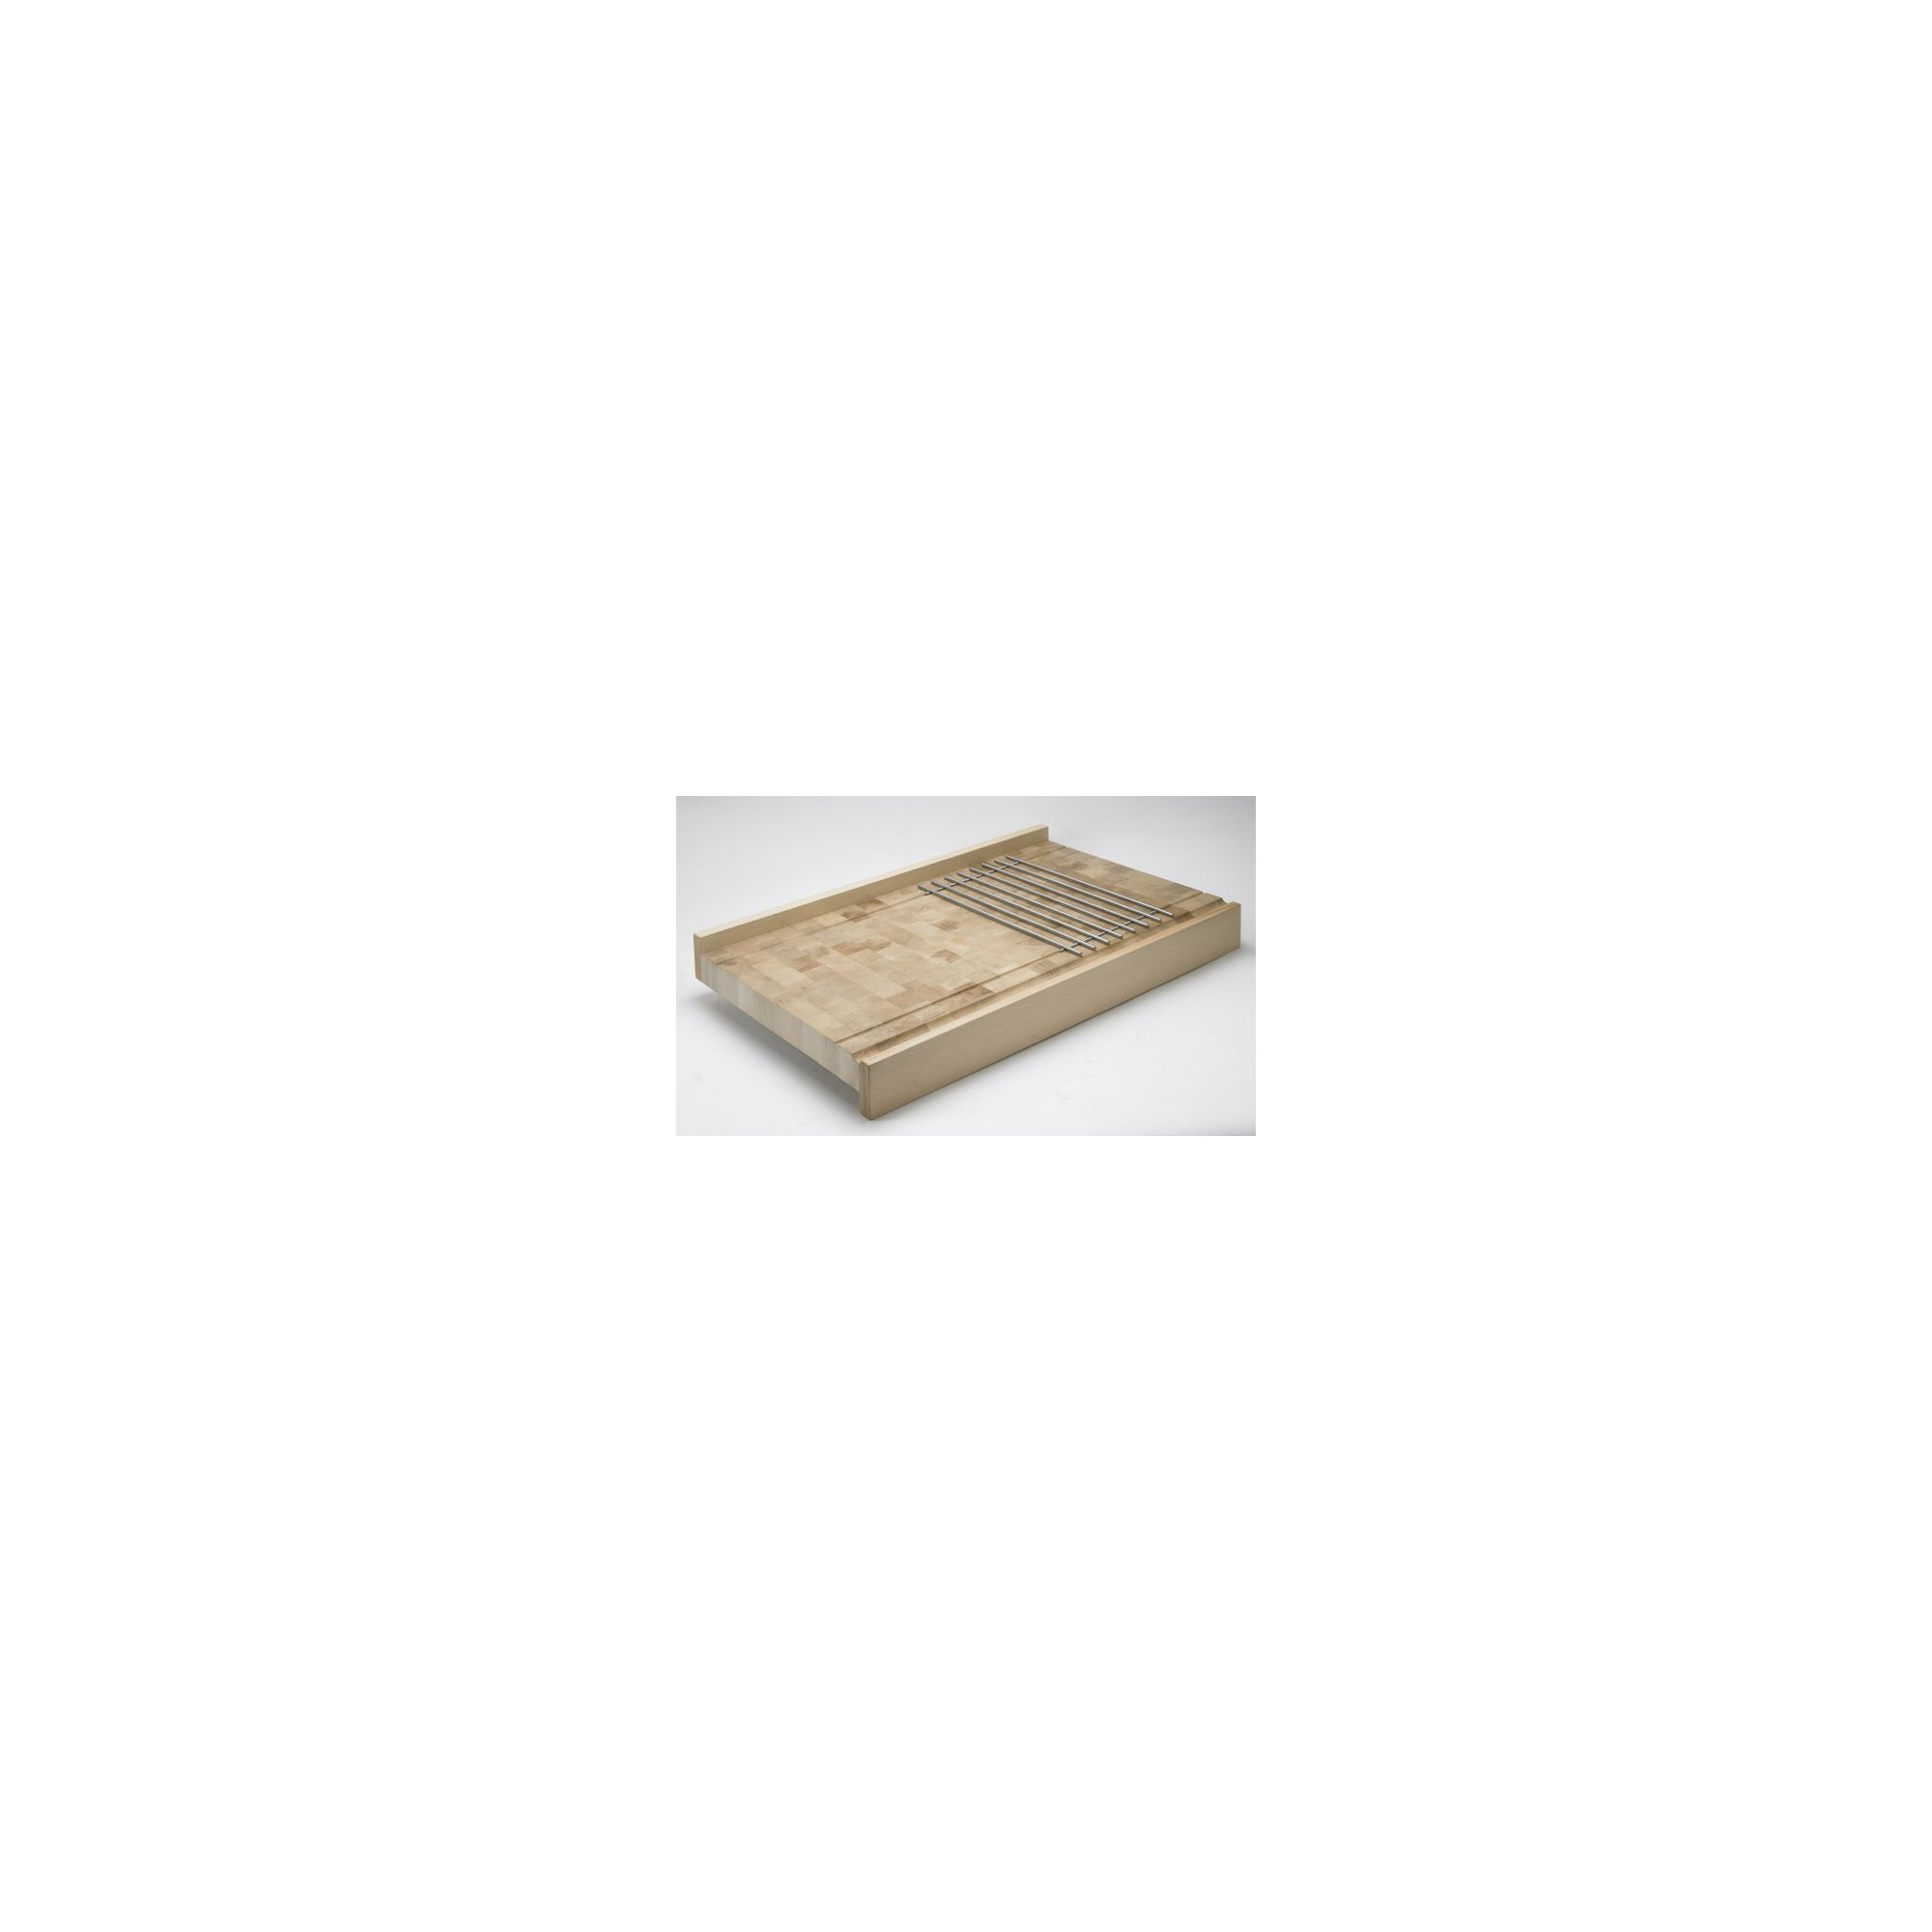 Chabret Stationary Worktop - 6cm X 100cm X 60cm at Tesco Direct